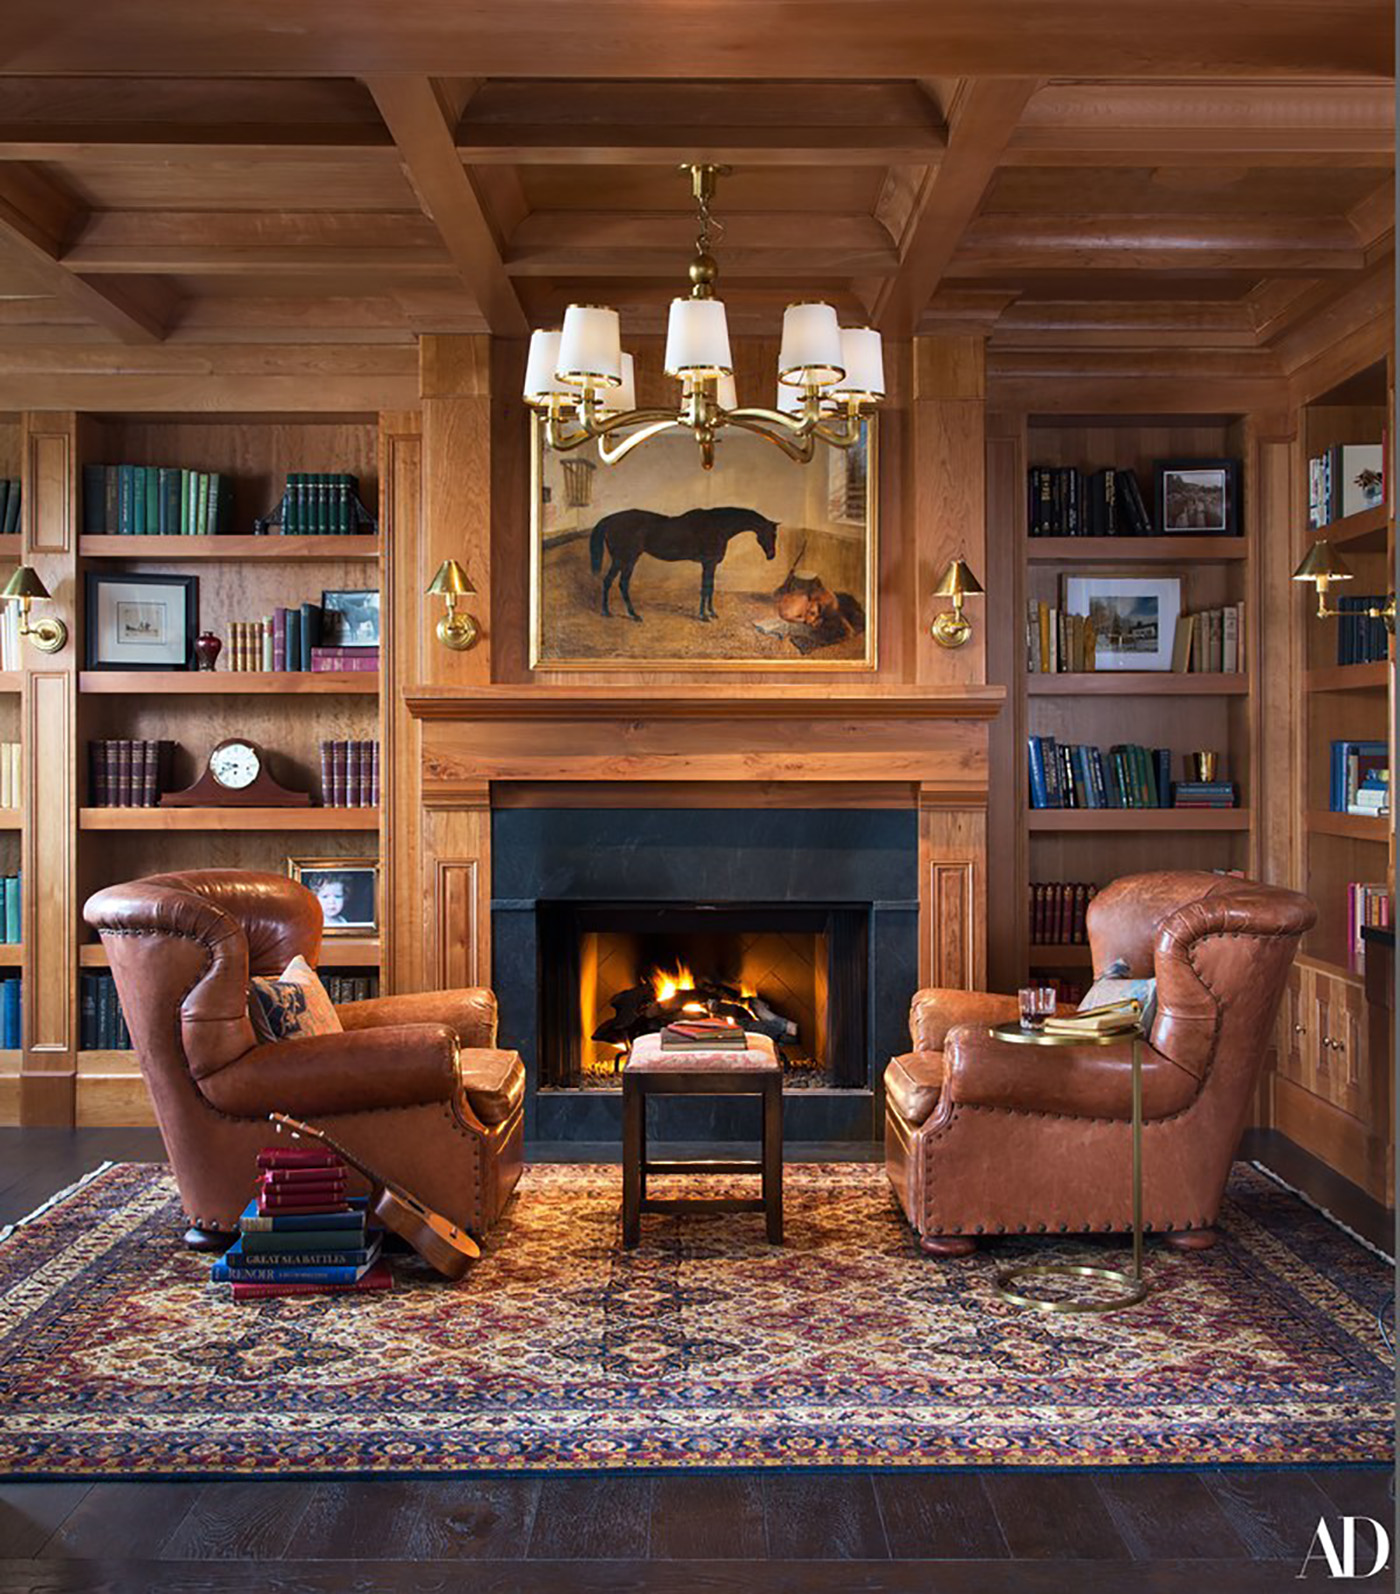 Felicity Huffman and William H. Macy's Colorado Getaway - A Dreamy Vacation Home featured by popular DC lifestyle blogger, Monica Dutia